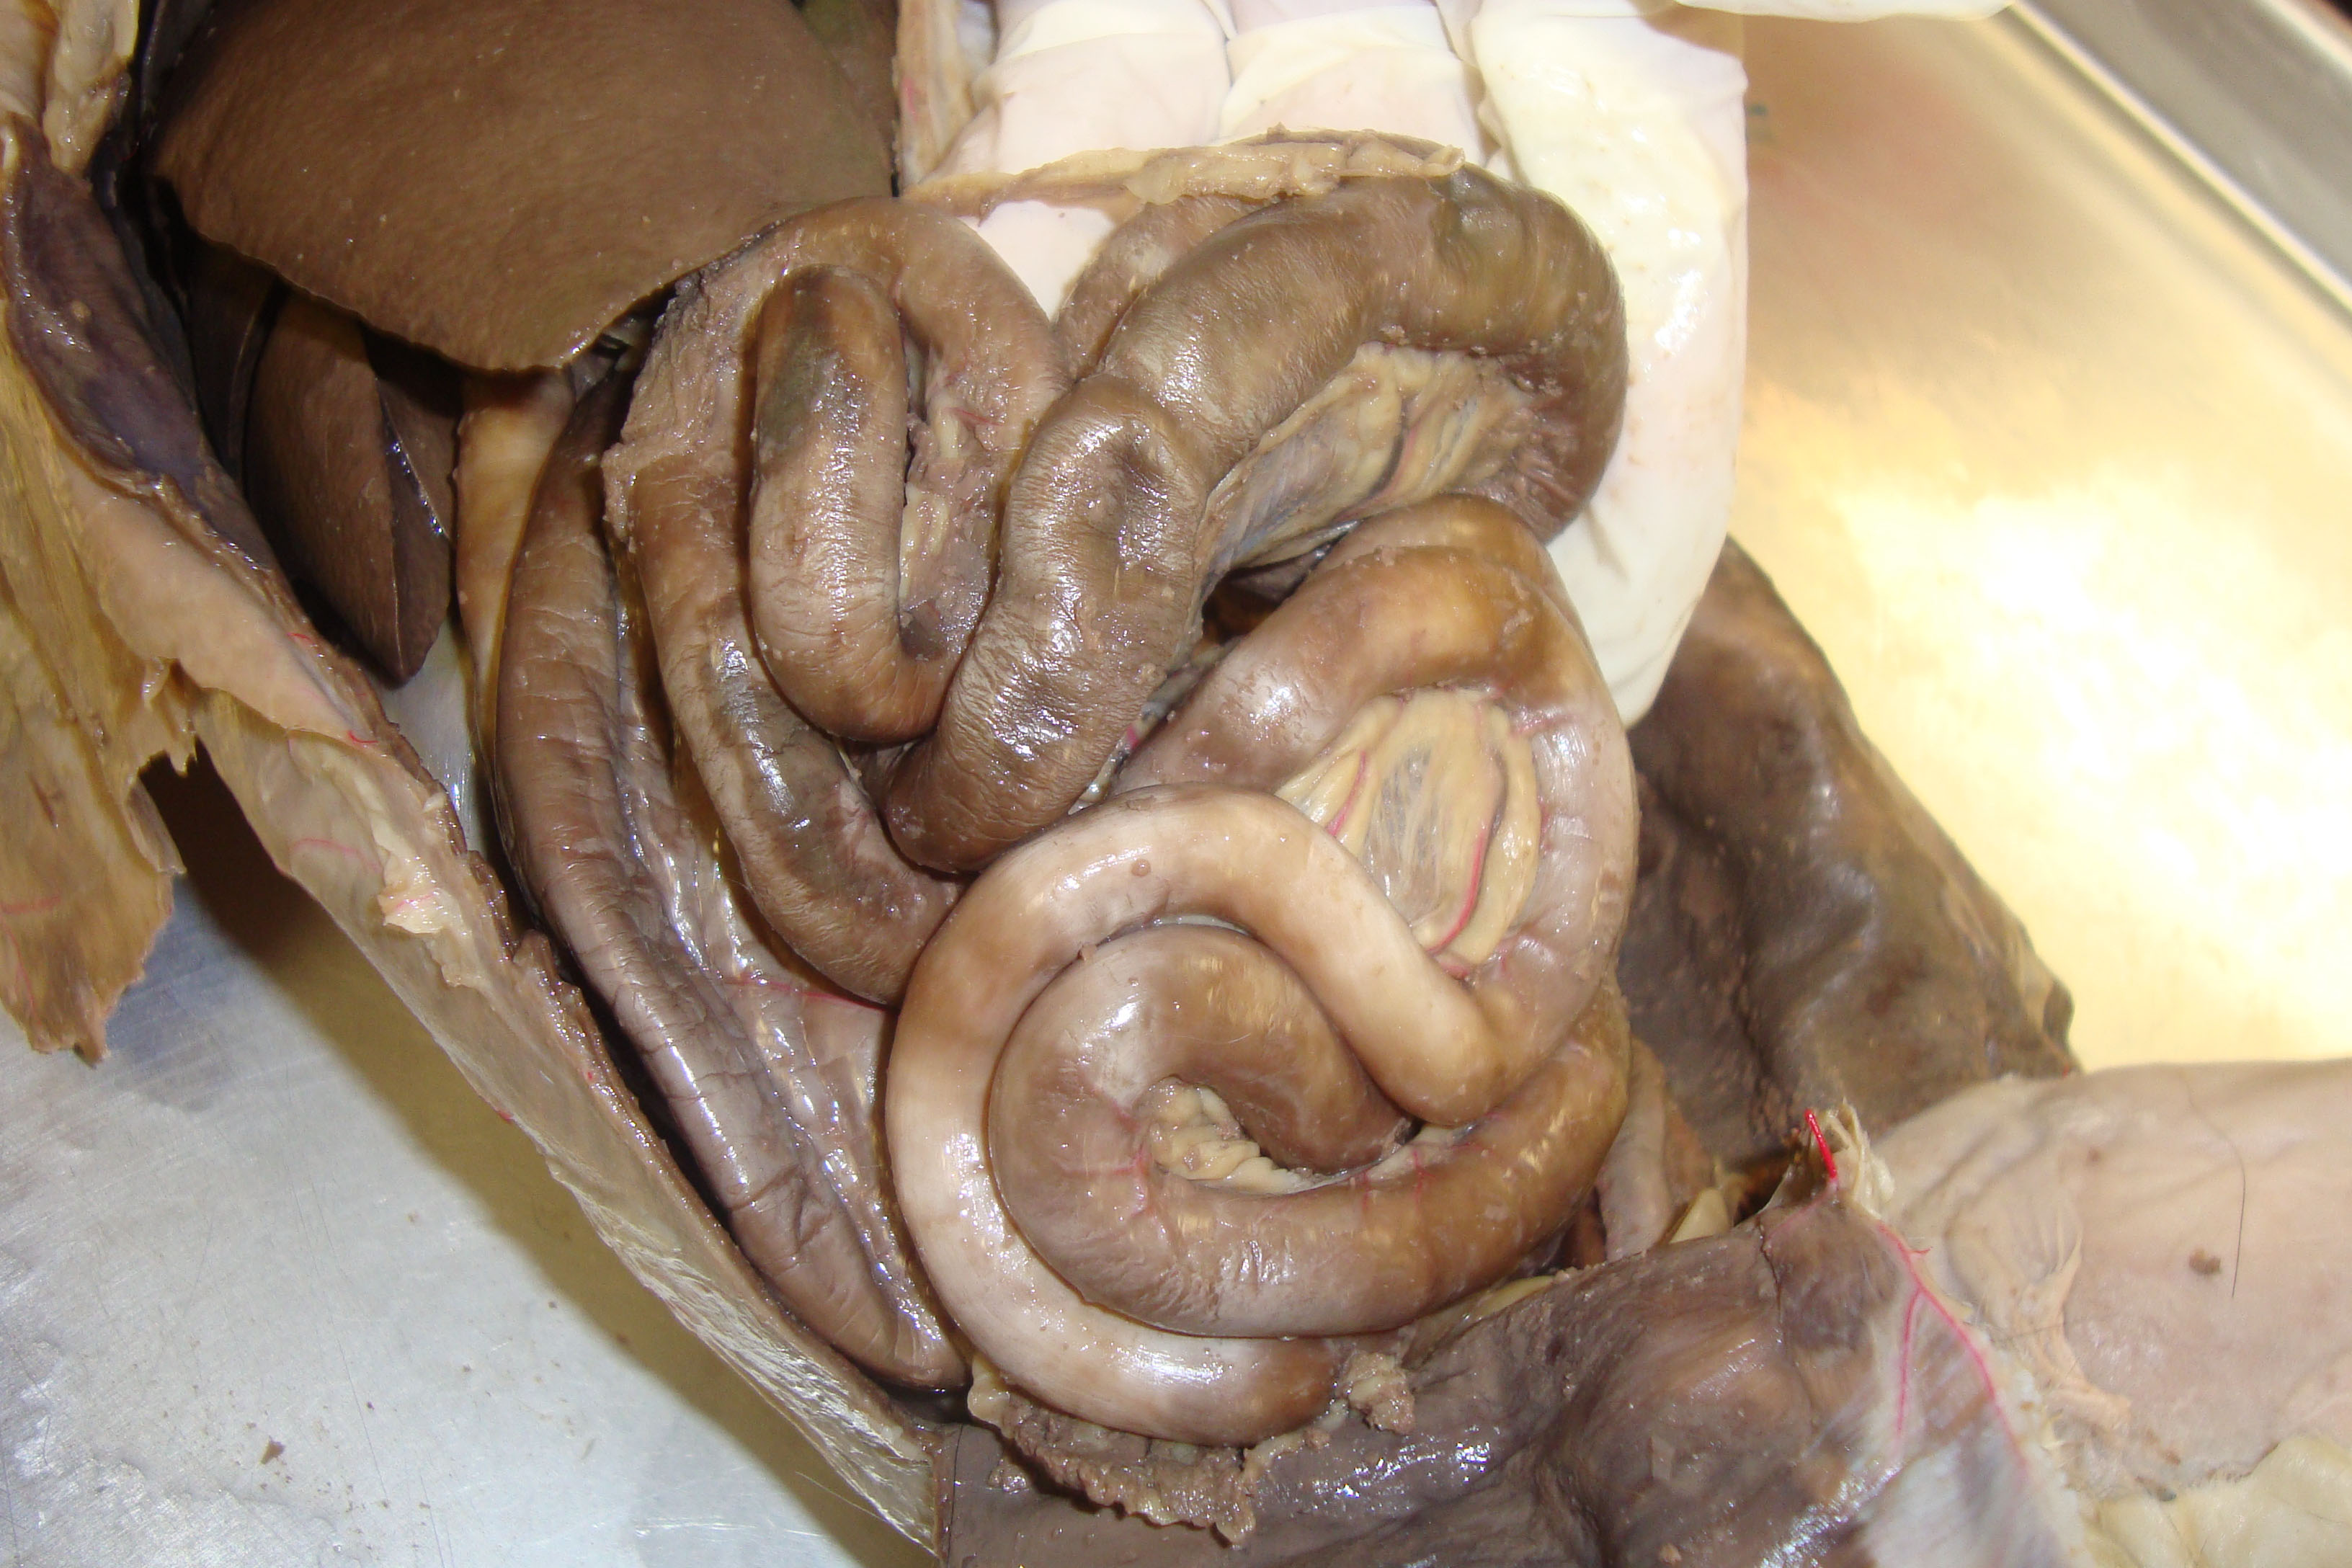 Real small intestine stretched out